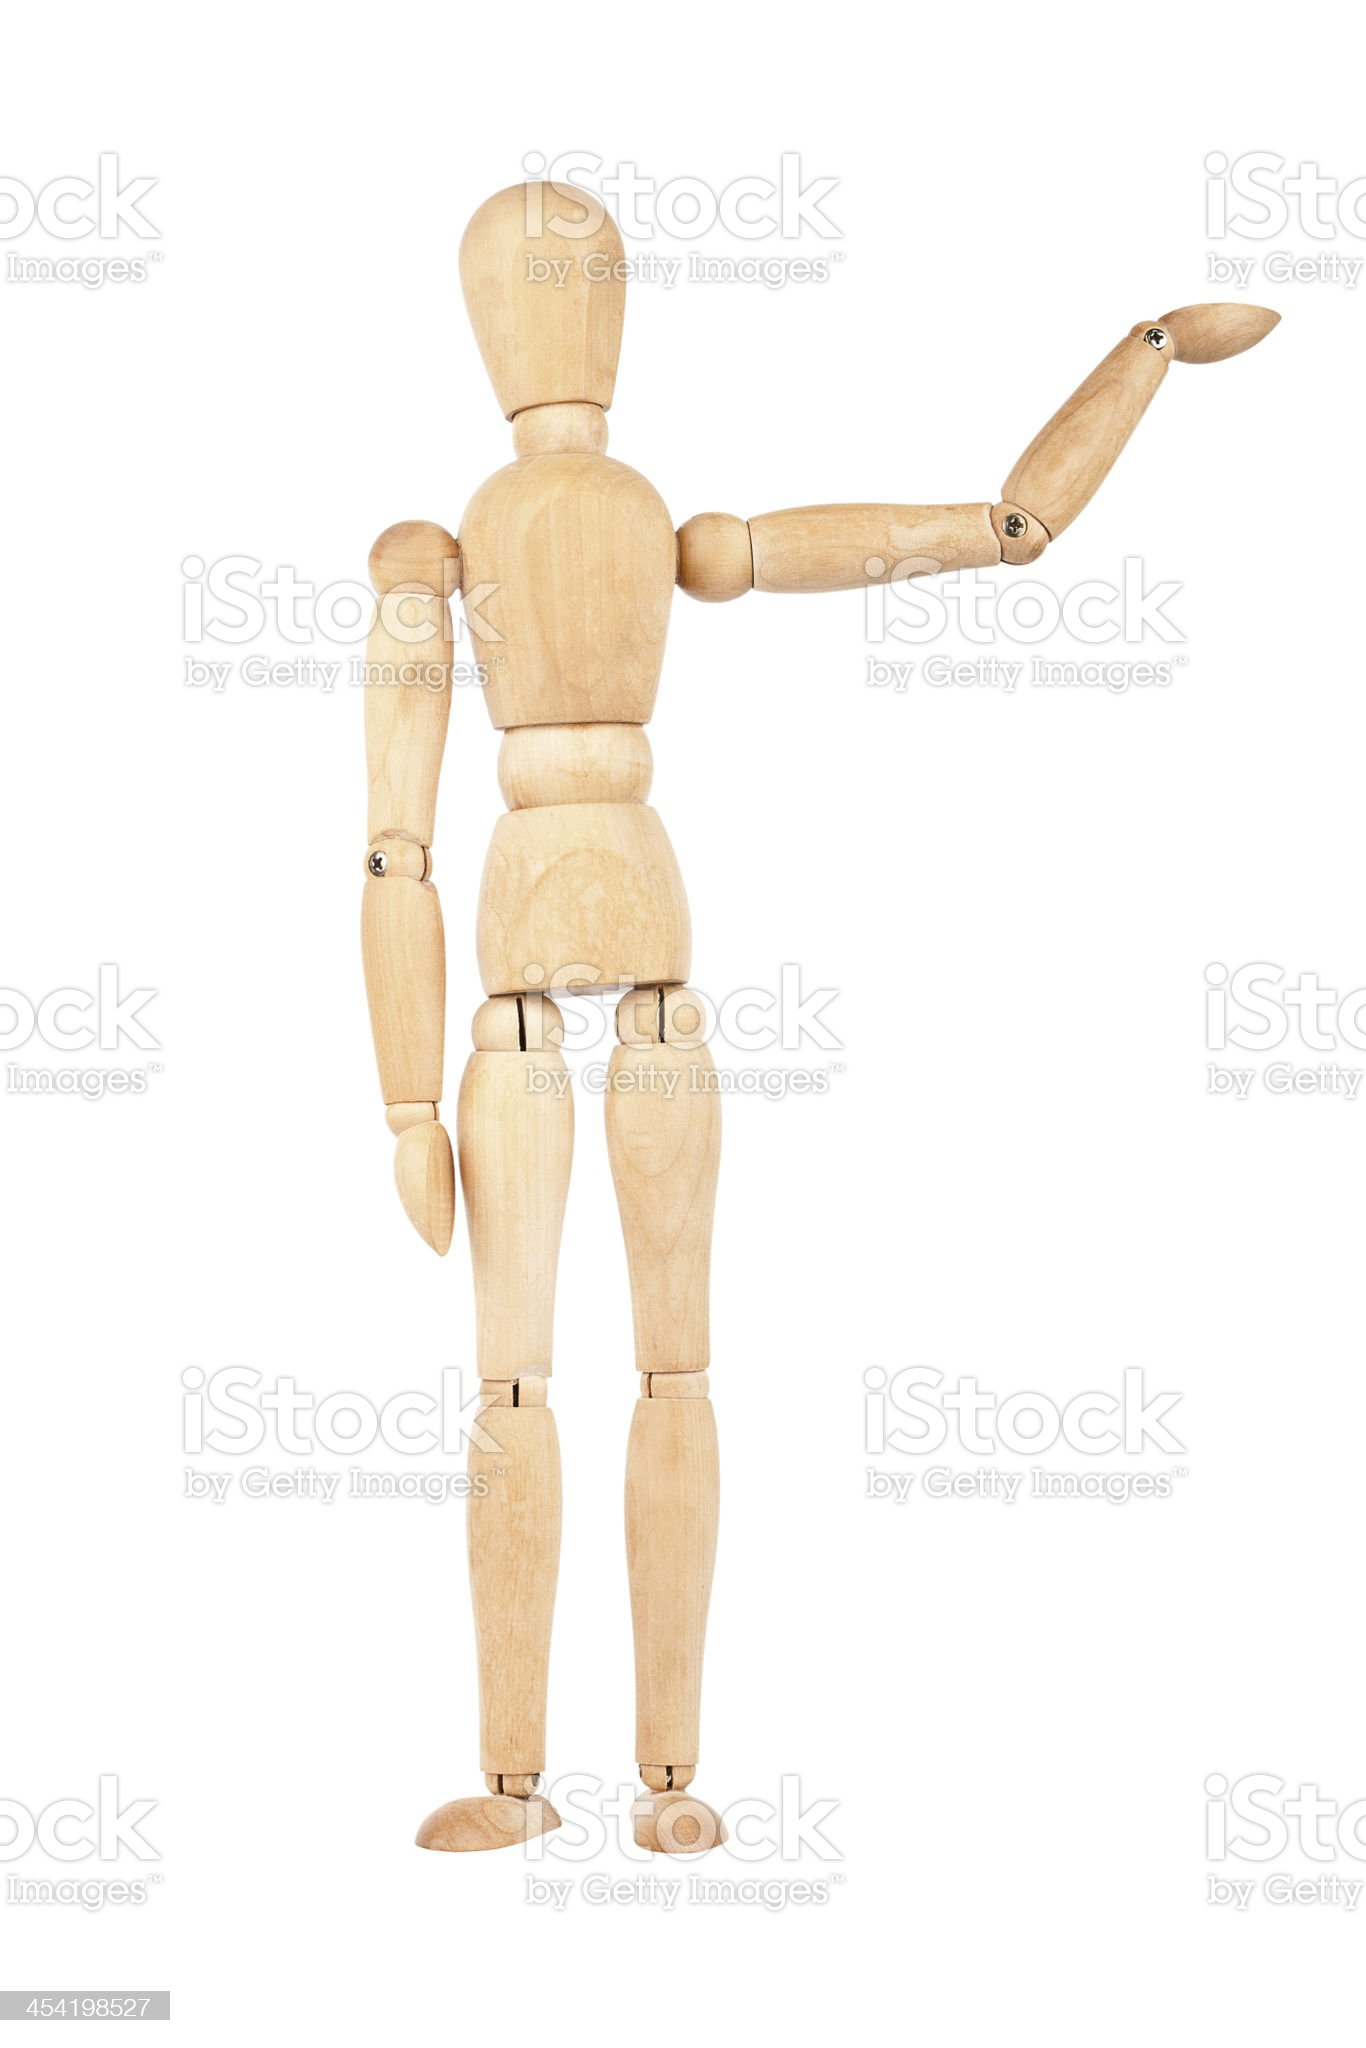 Wooden dummy with raised hand royalty-free stock photo